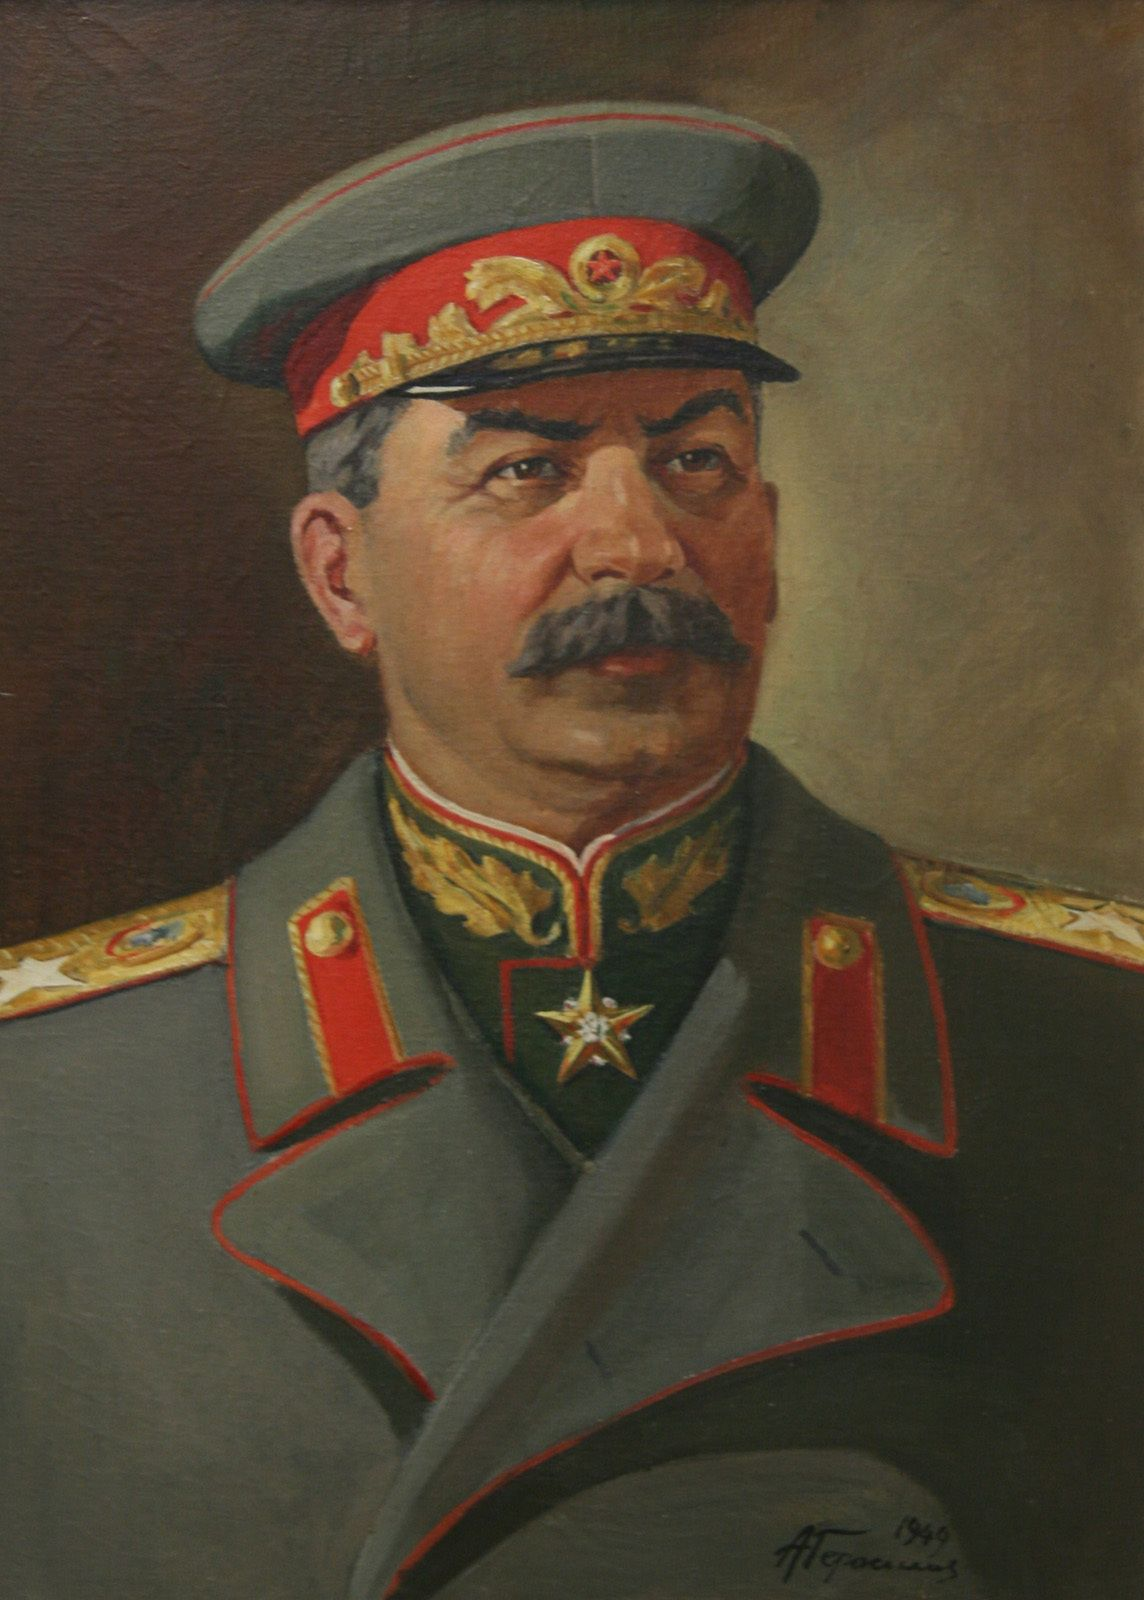 I think it might be Stalin?